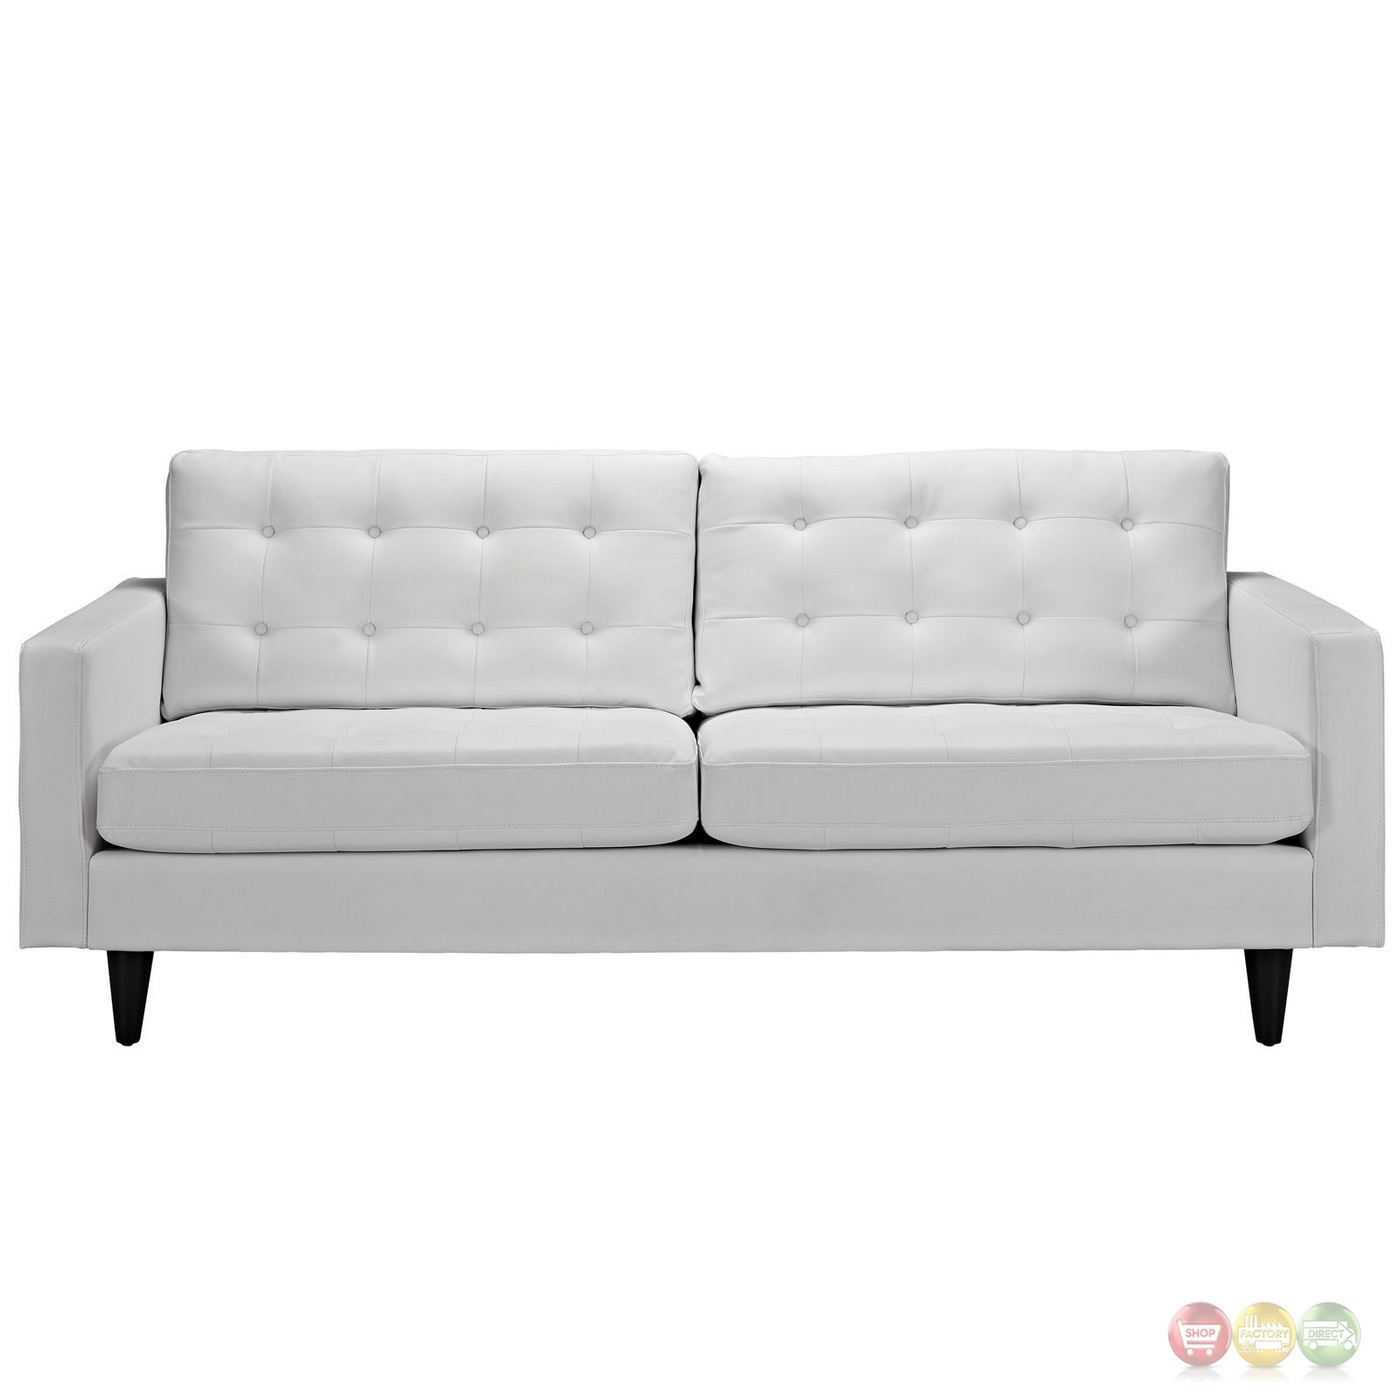 Enfield Modern White Leather Sofa: Mid-Century Modern Empress Contemporary Button-Tufted